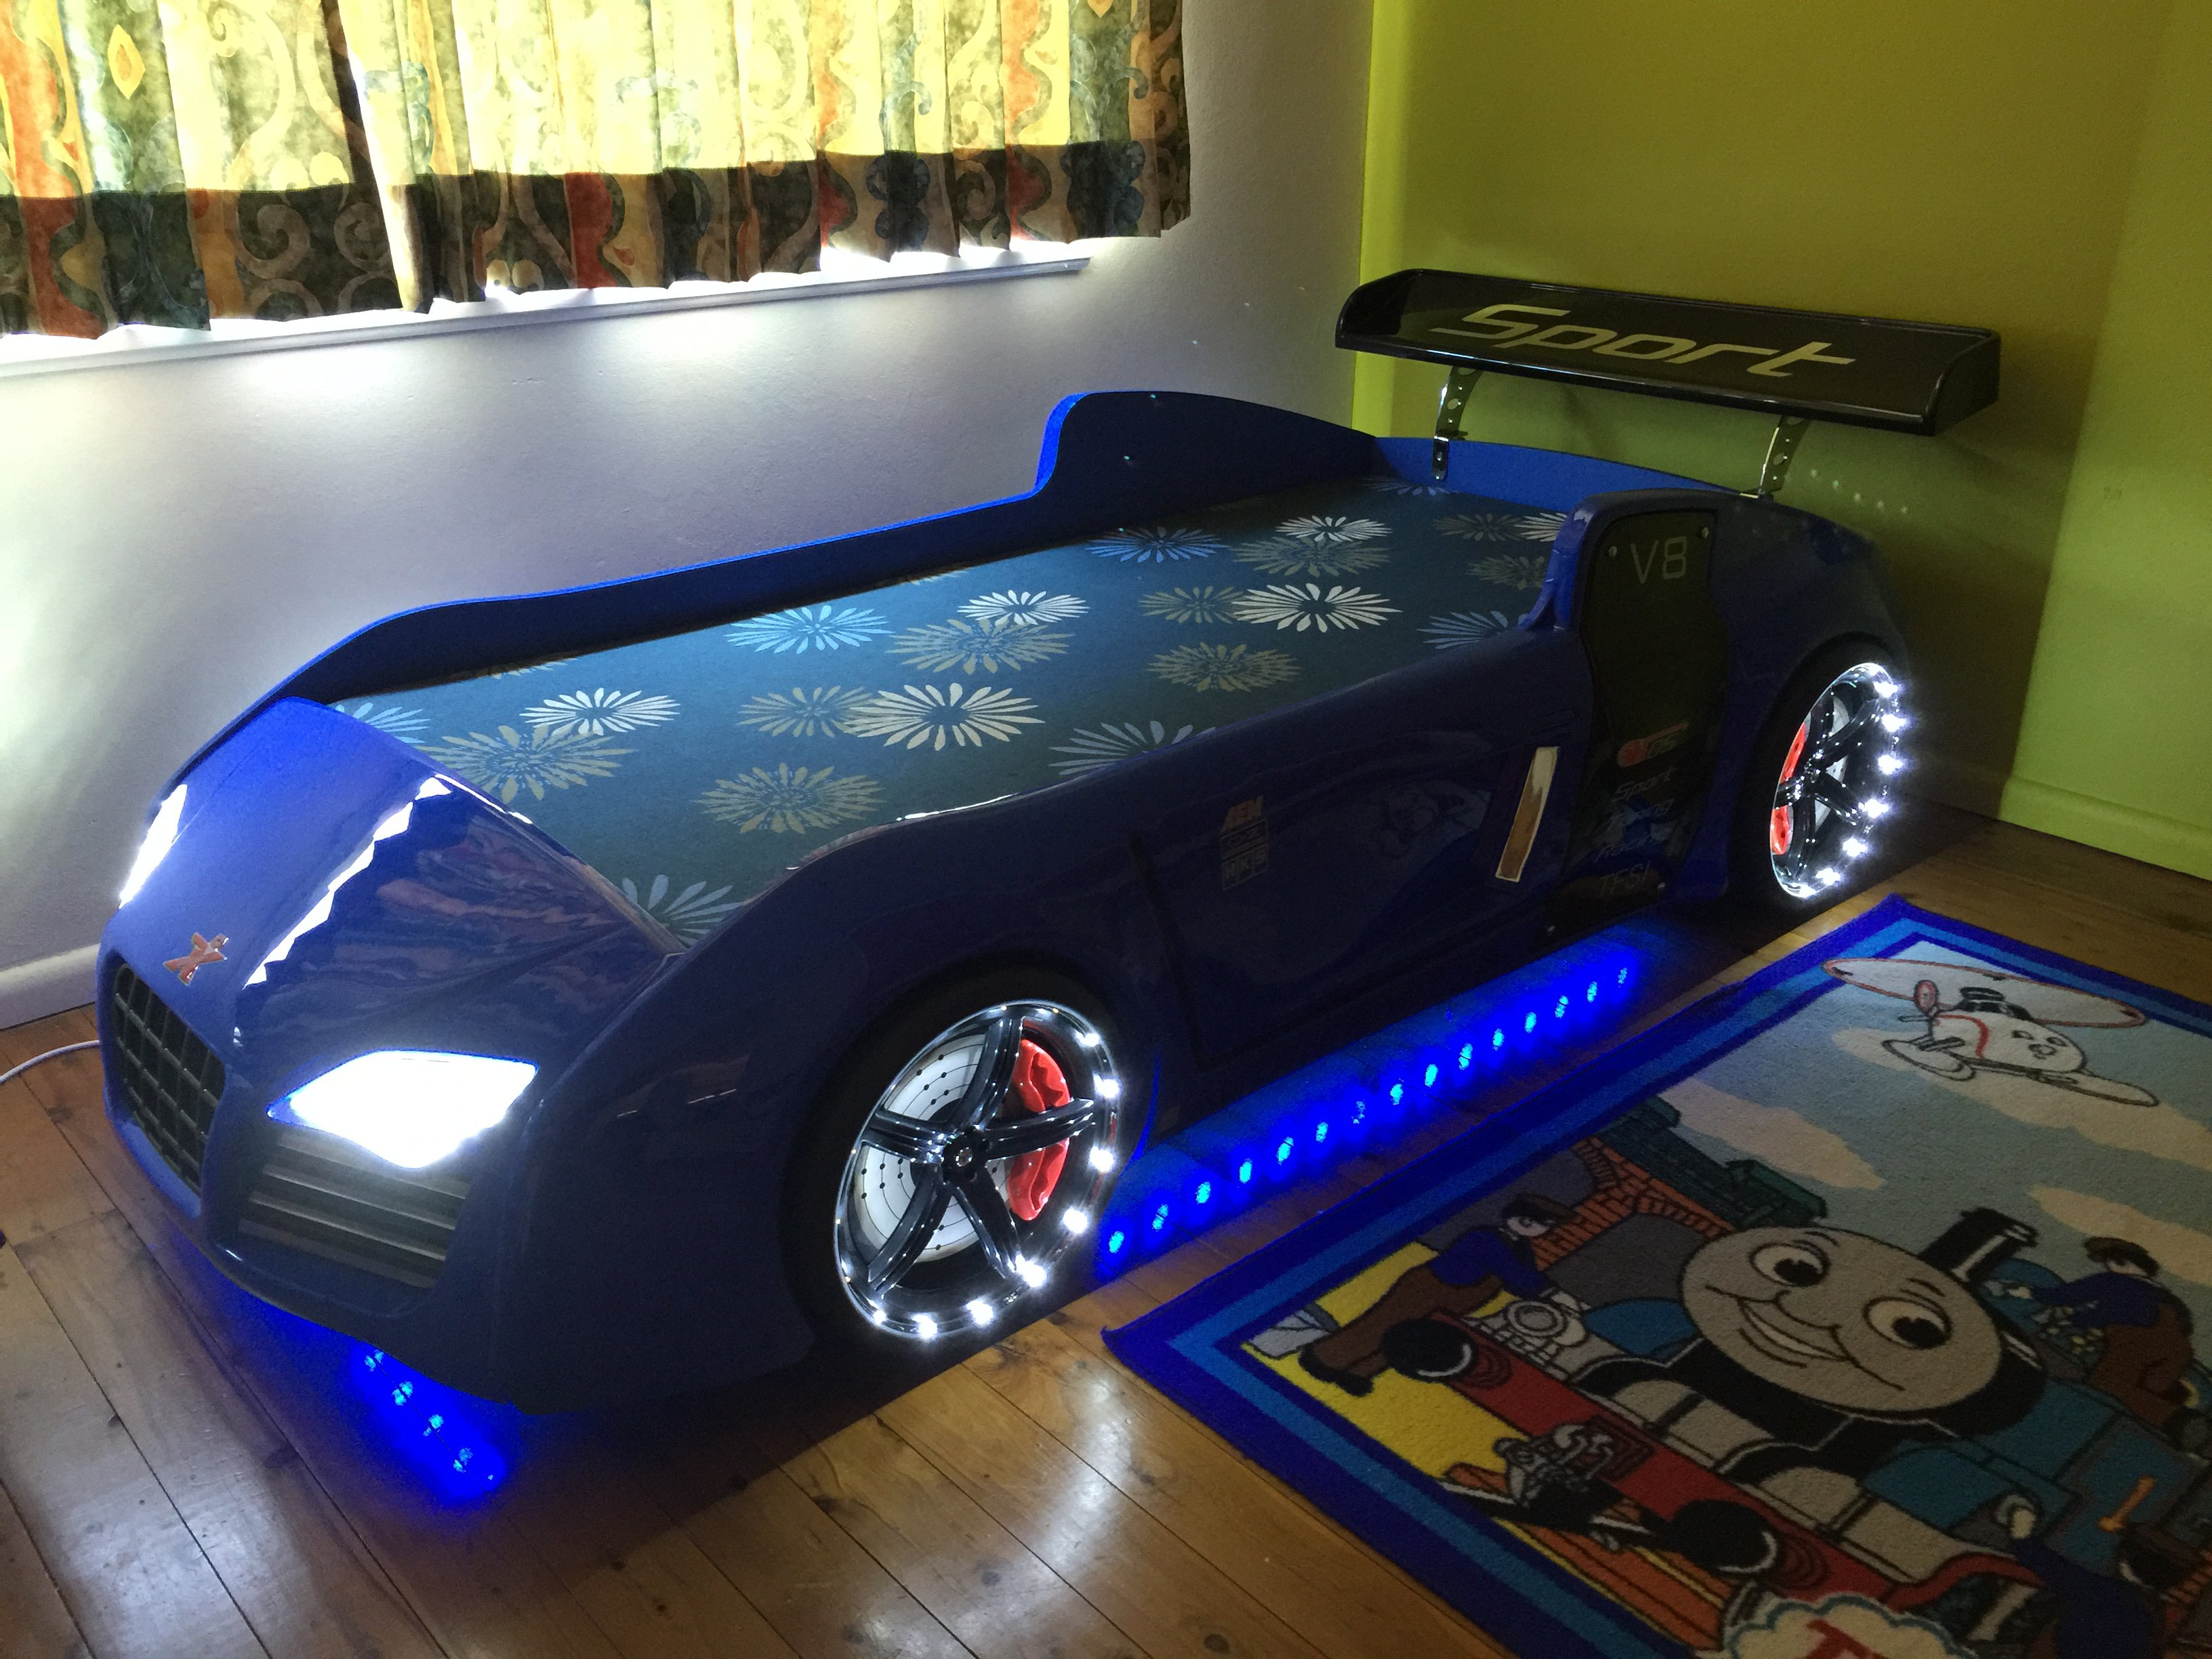 Kids Beds Melbourne Racing Car Beds For Sale In Melbourne Now Online Little